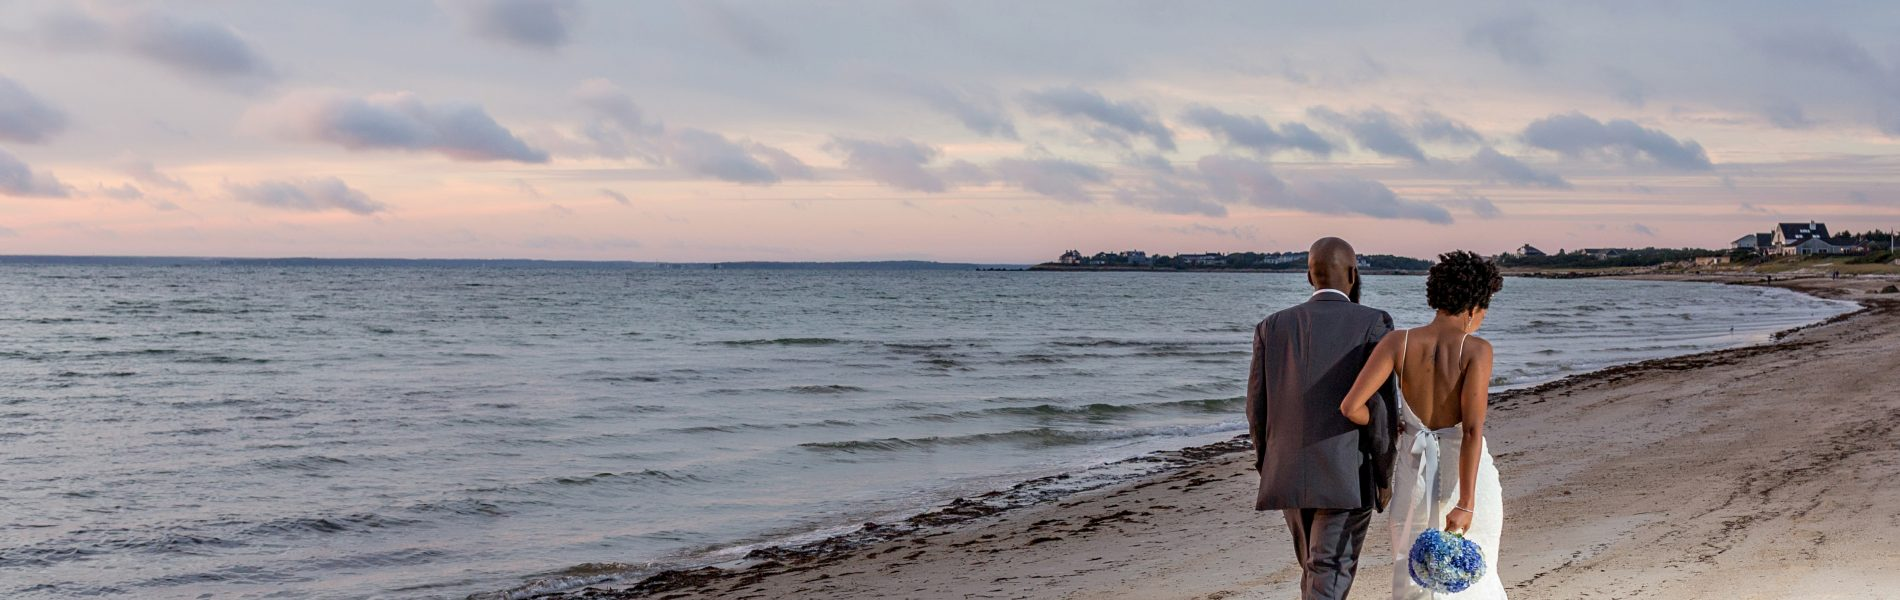 Plan your Cape Cod Honeymoon and Wedding at Sea Crest Beach Hotel